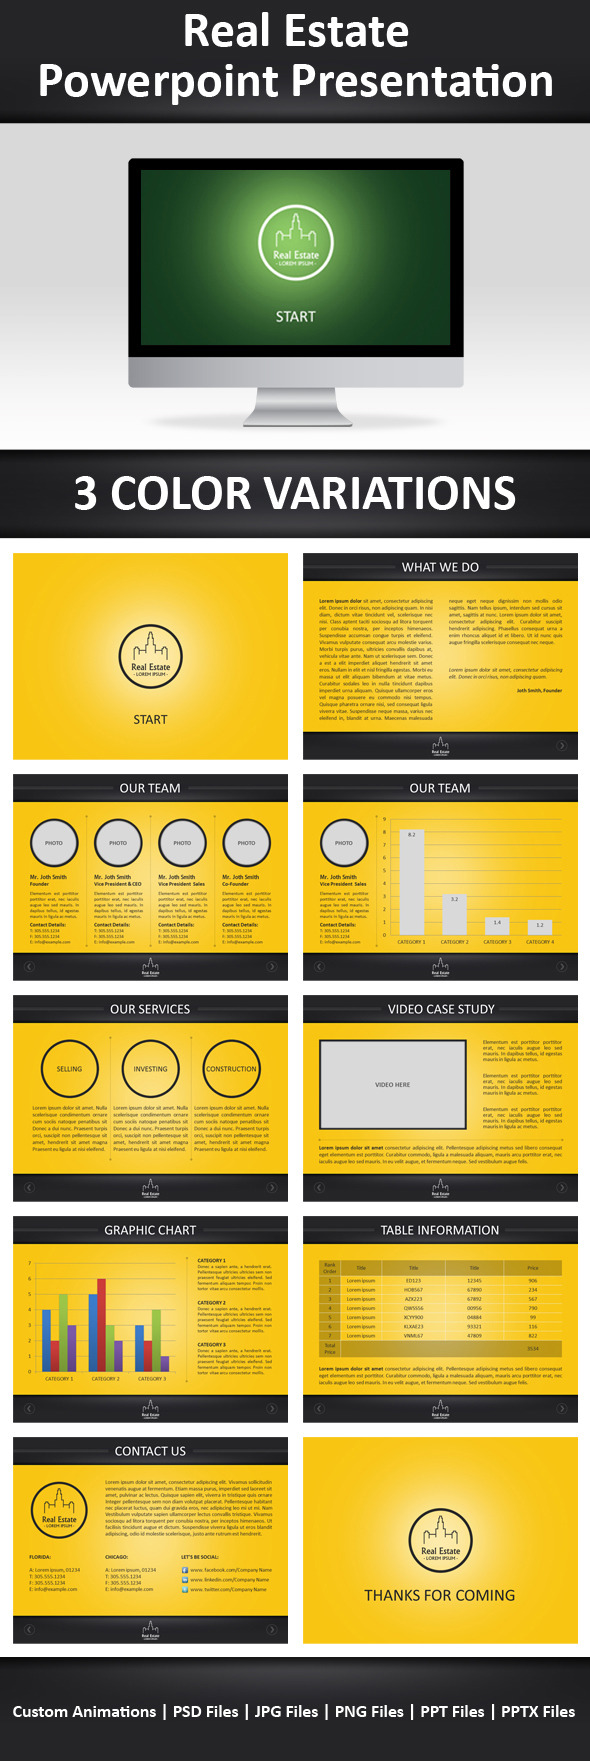 Real Estate Powerpoint Template - Business PowerPoint Templates